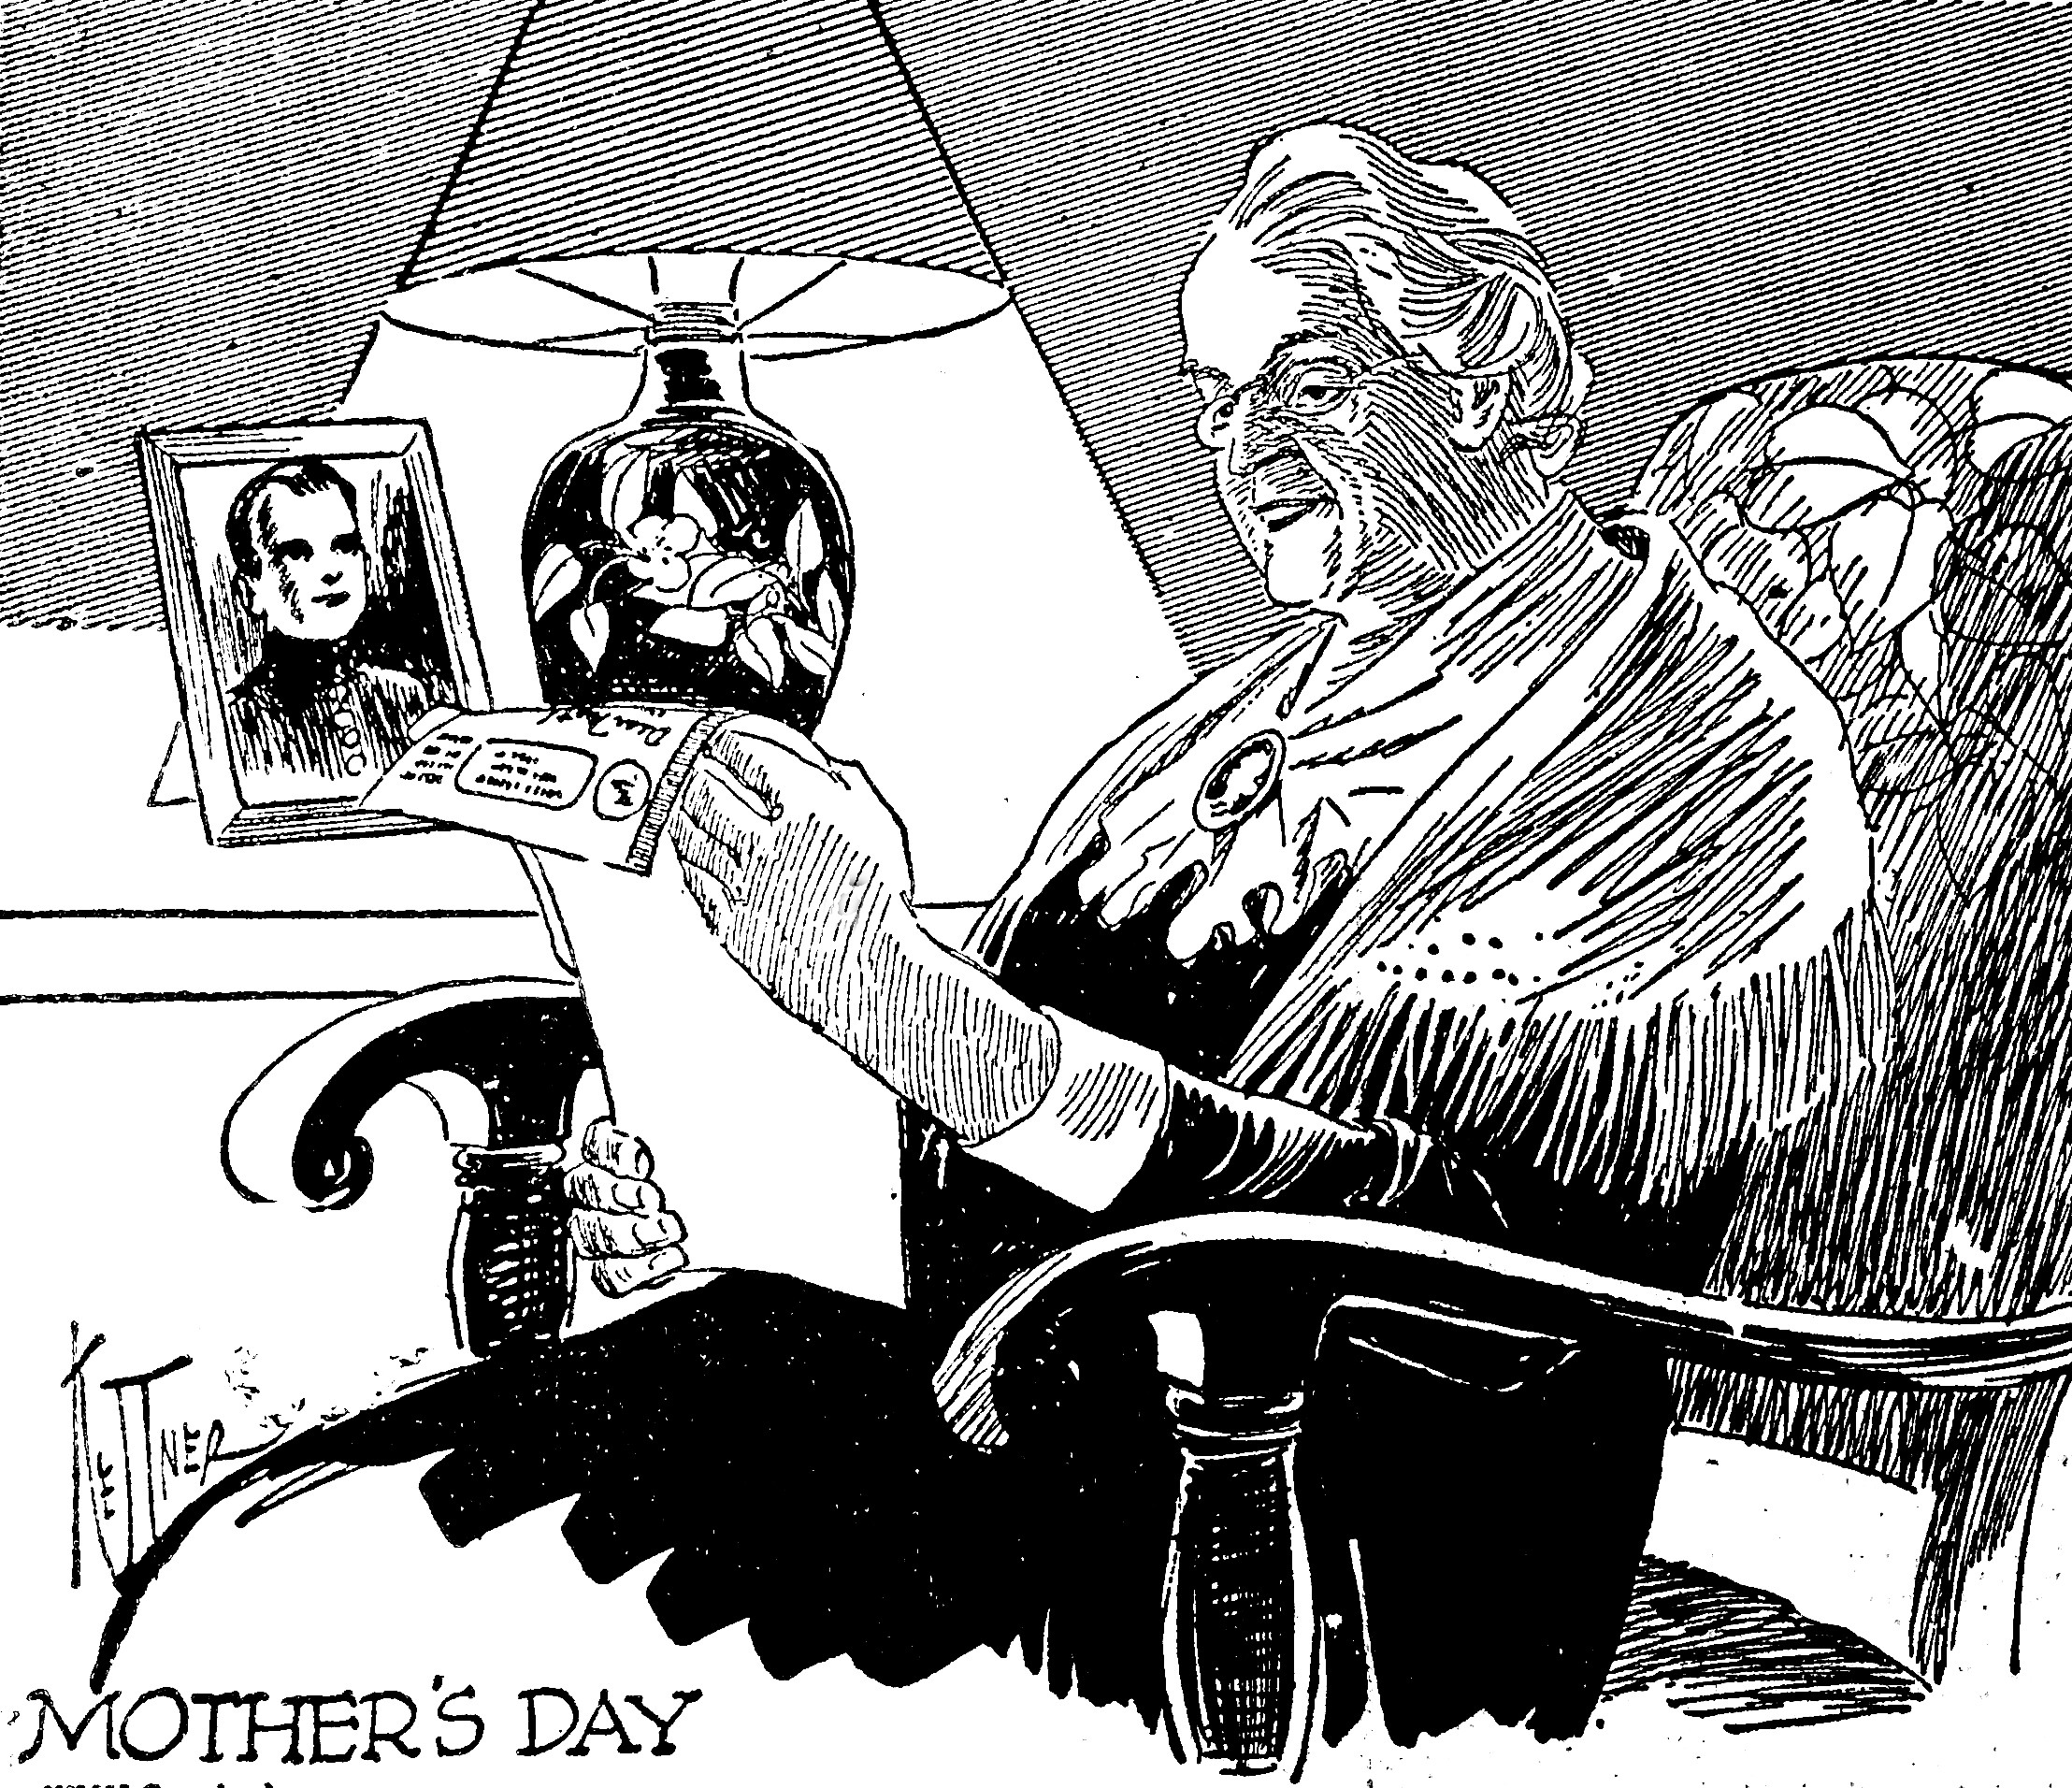 EDITOR'S NOTE: The cartoon above appeared at the top of the front page of the Wednesday, May 9, 1945 edition of the Press & Journal, accompanying the story to the right about V-E Day. It was common to have front-page cartoons during this era.